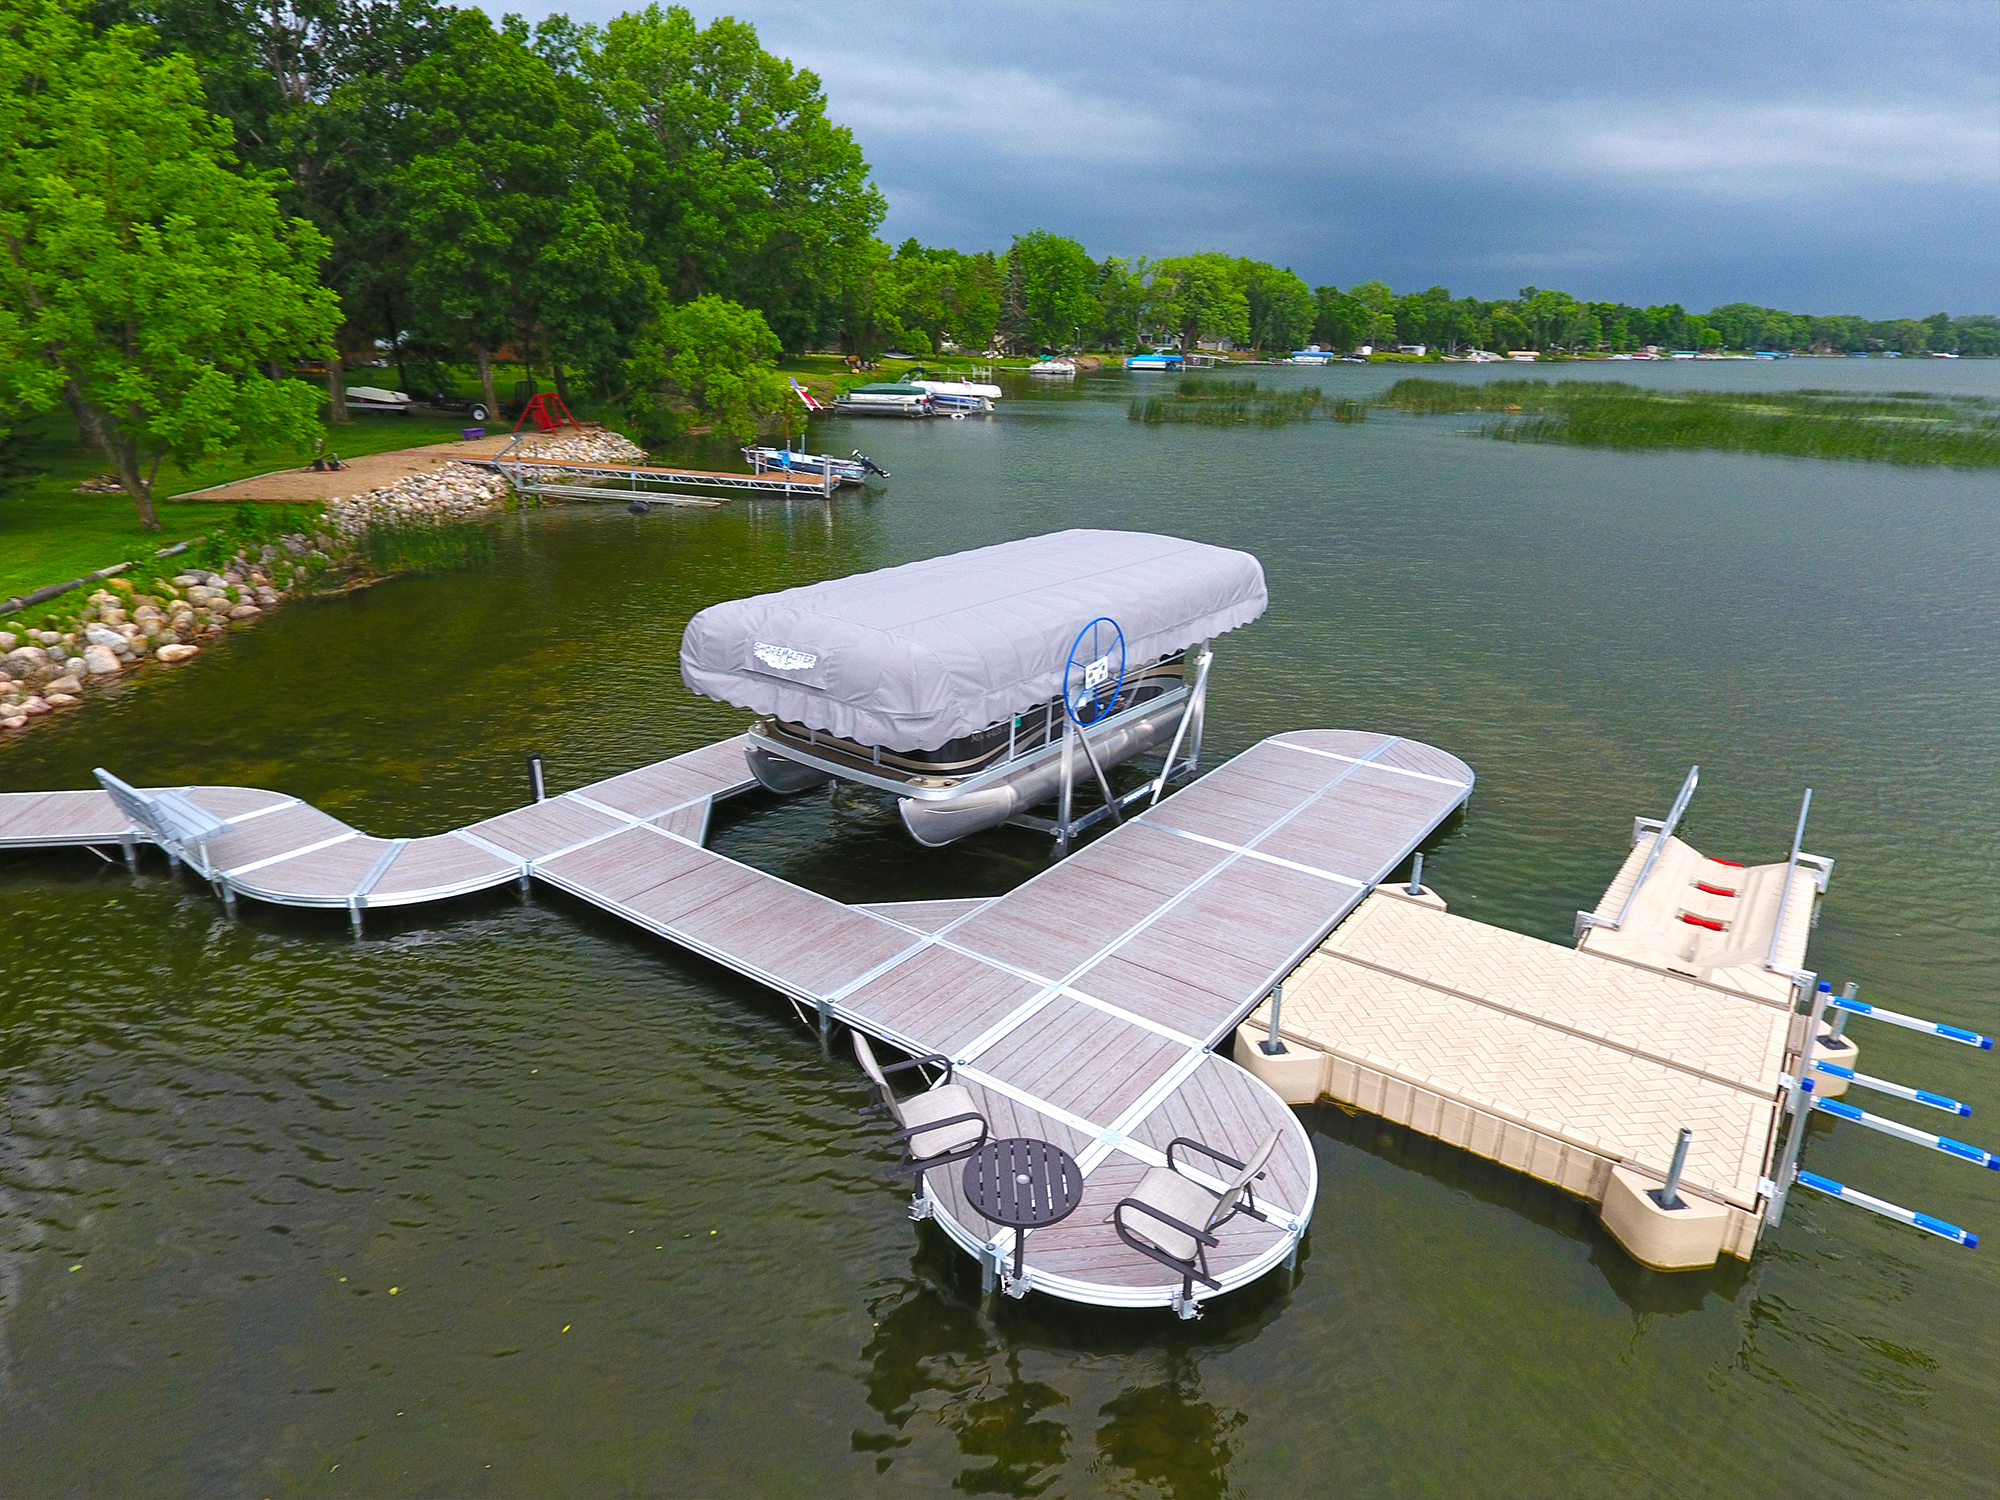 ShoreMaster Infintiy RS4 Dock with Gray Woodgain Decking and Curve Dock with PolyDock, ShorePort, Vertical Lift, Furniture